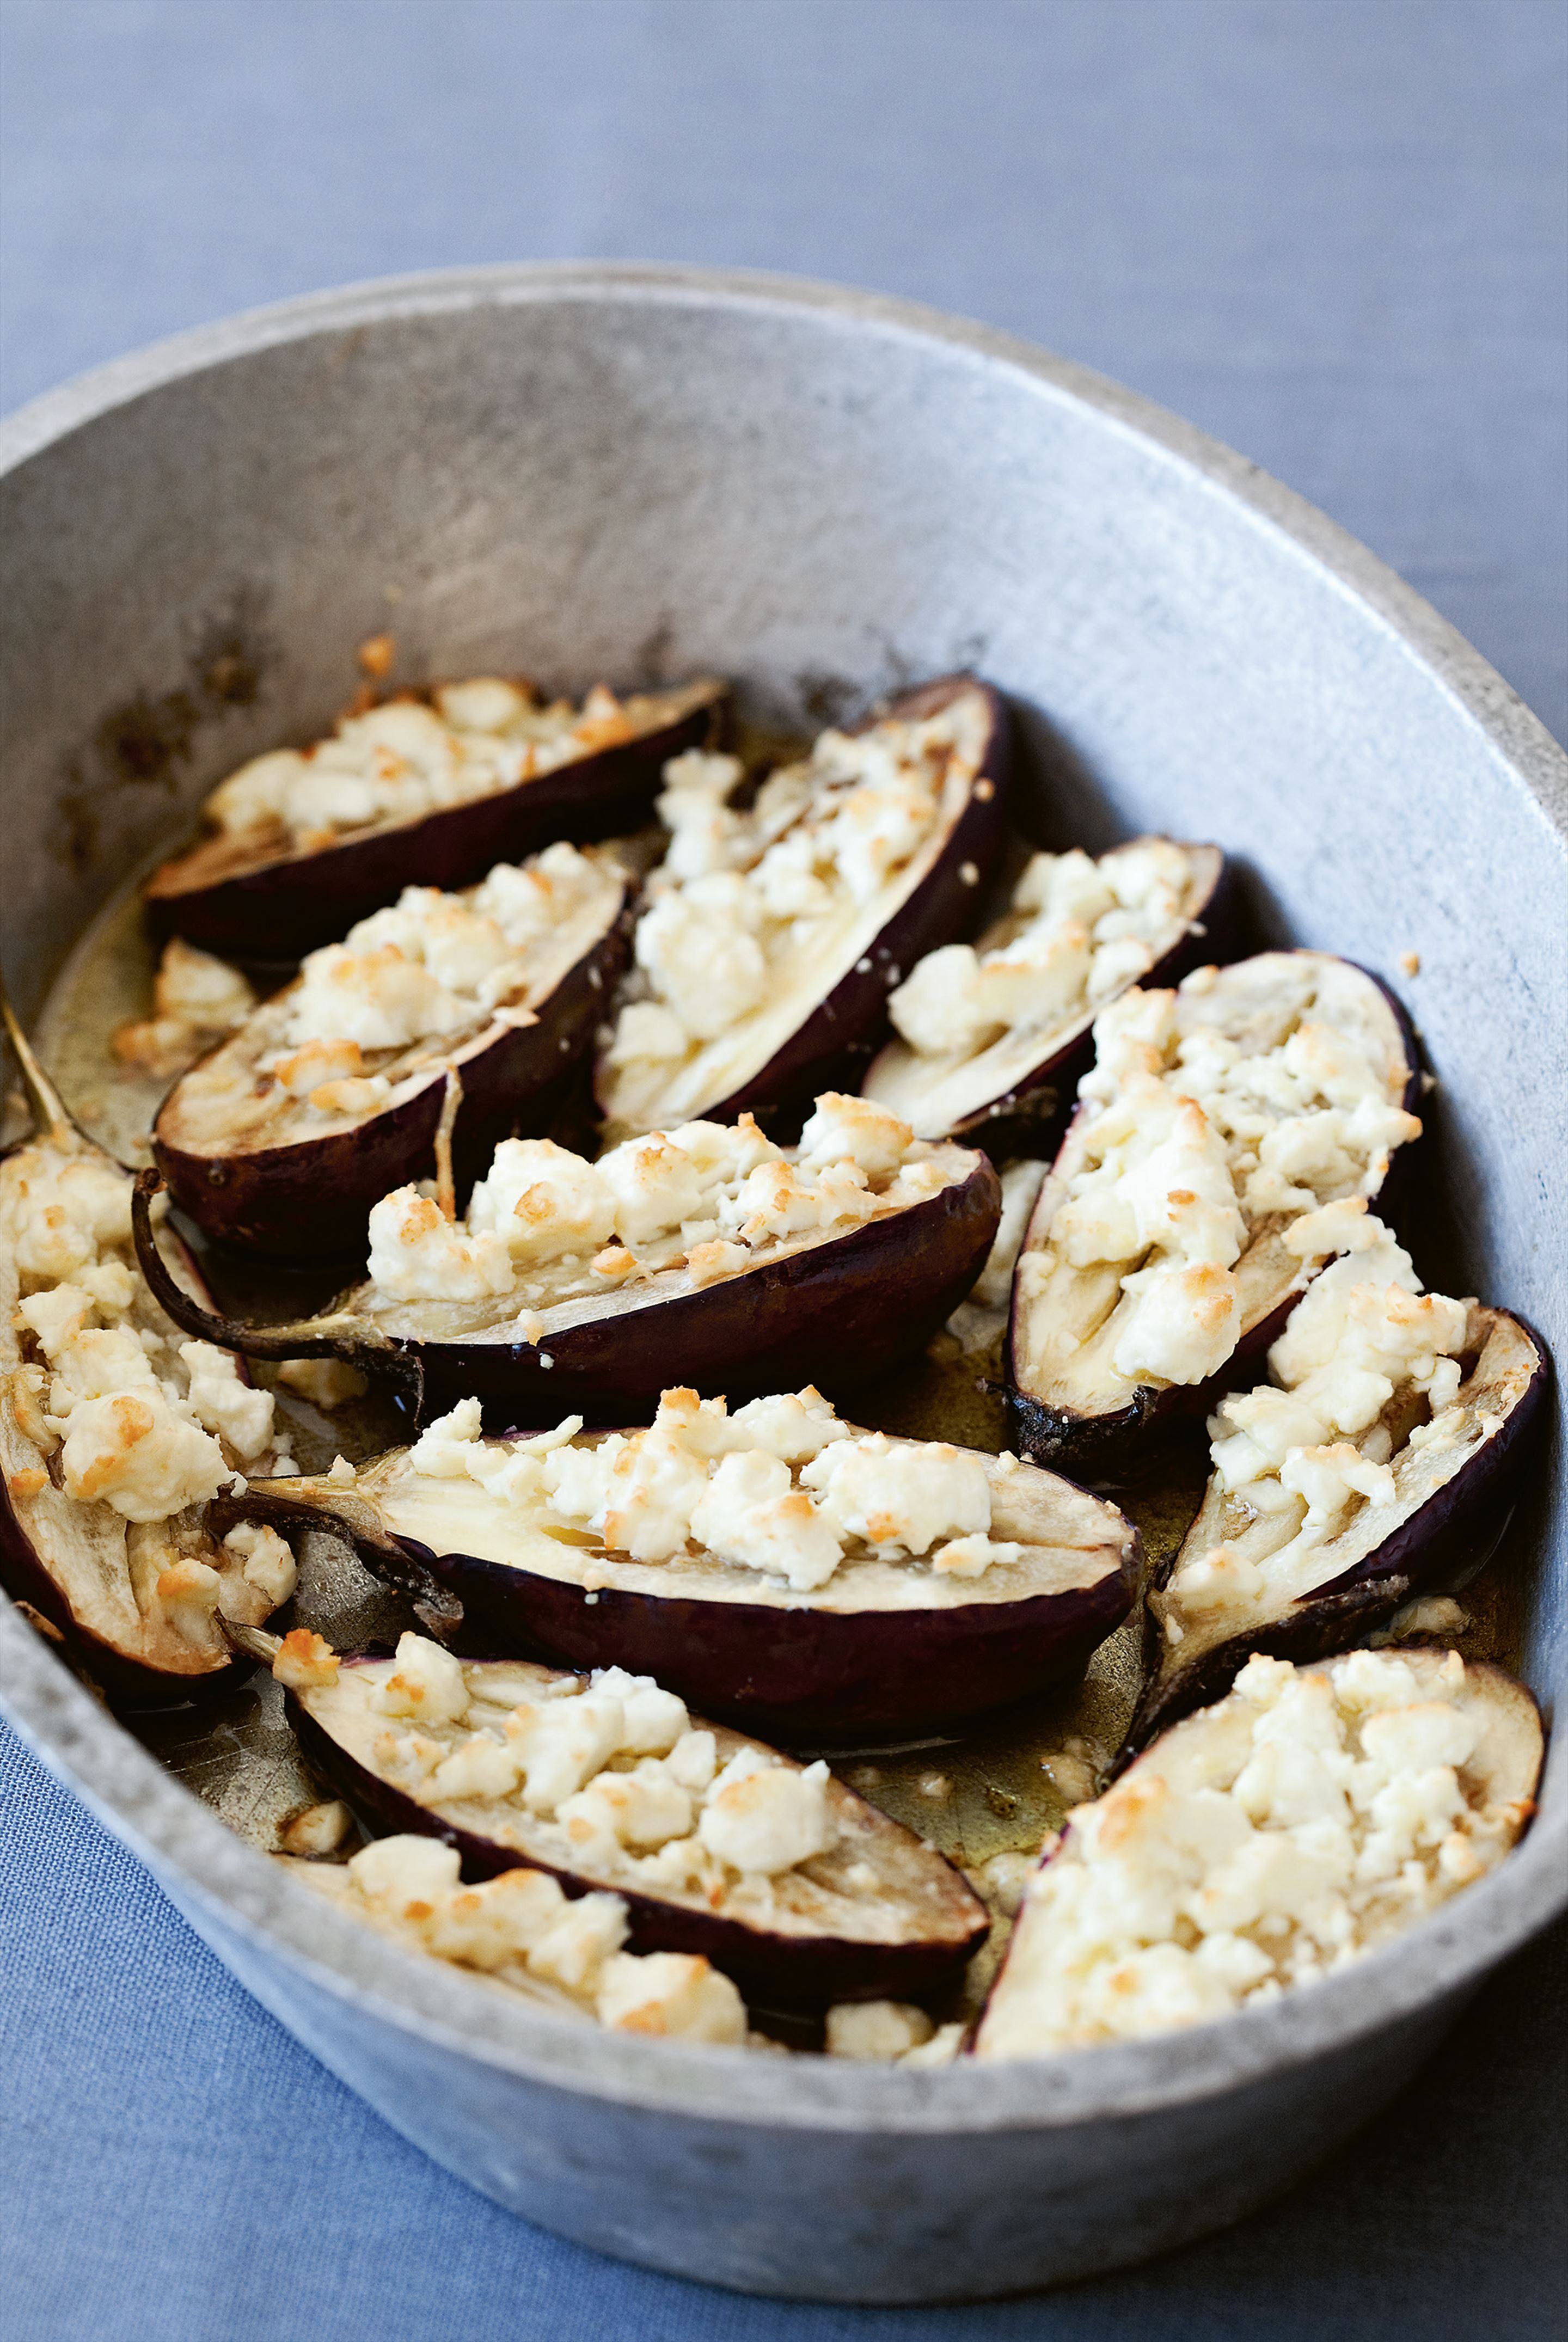 Aubergines baked with feta cheese